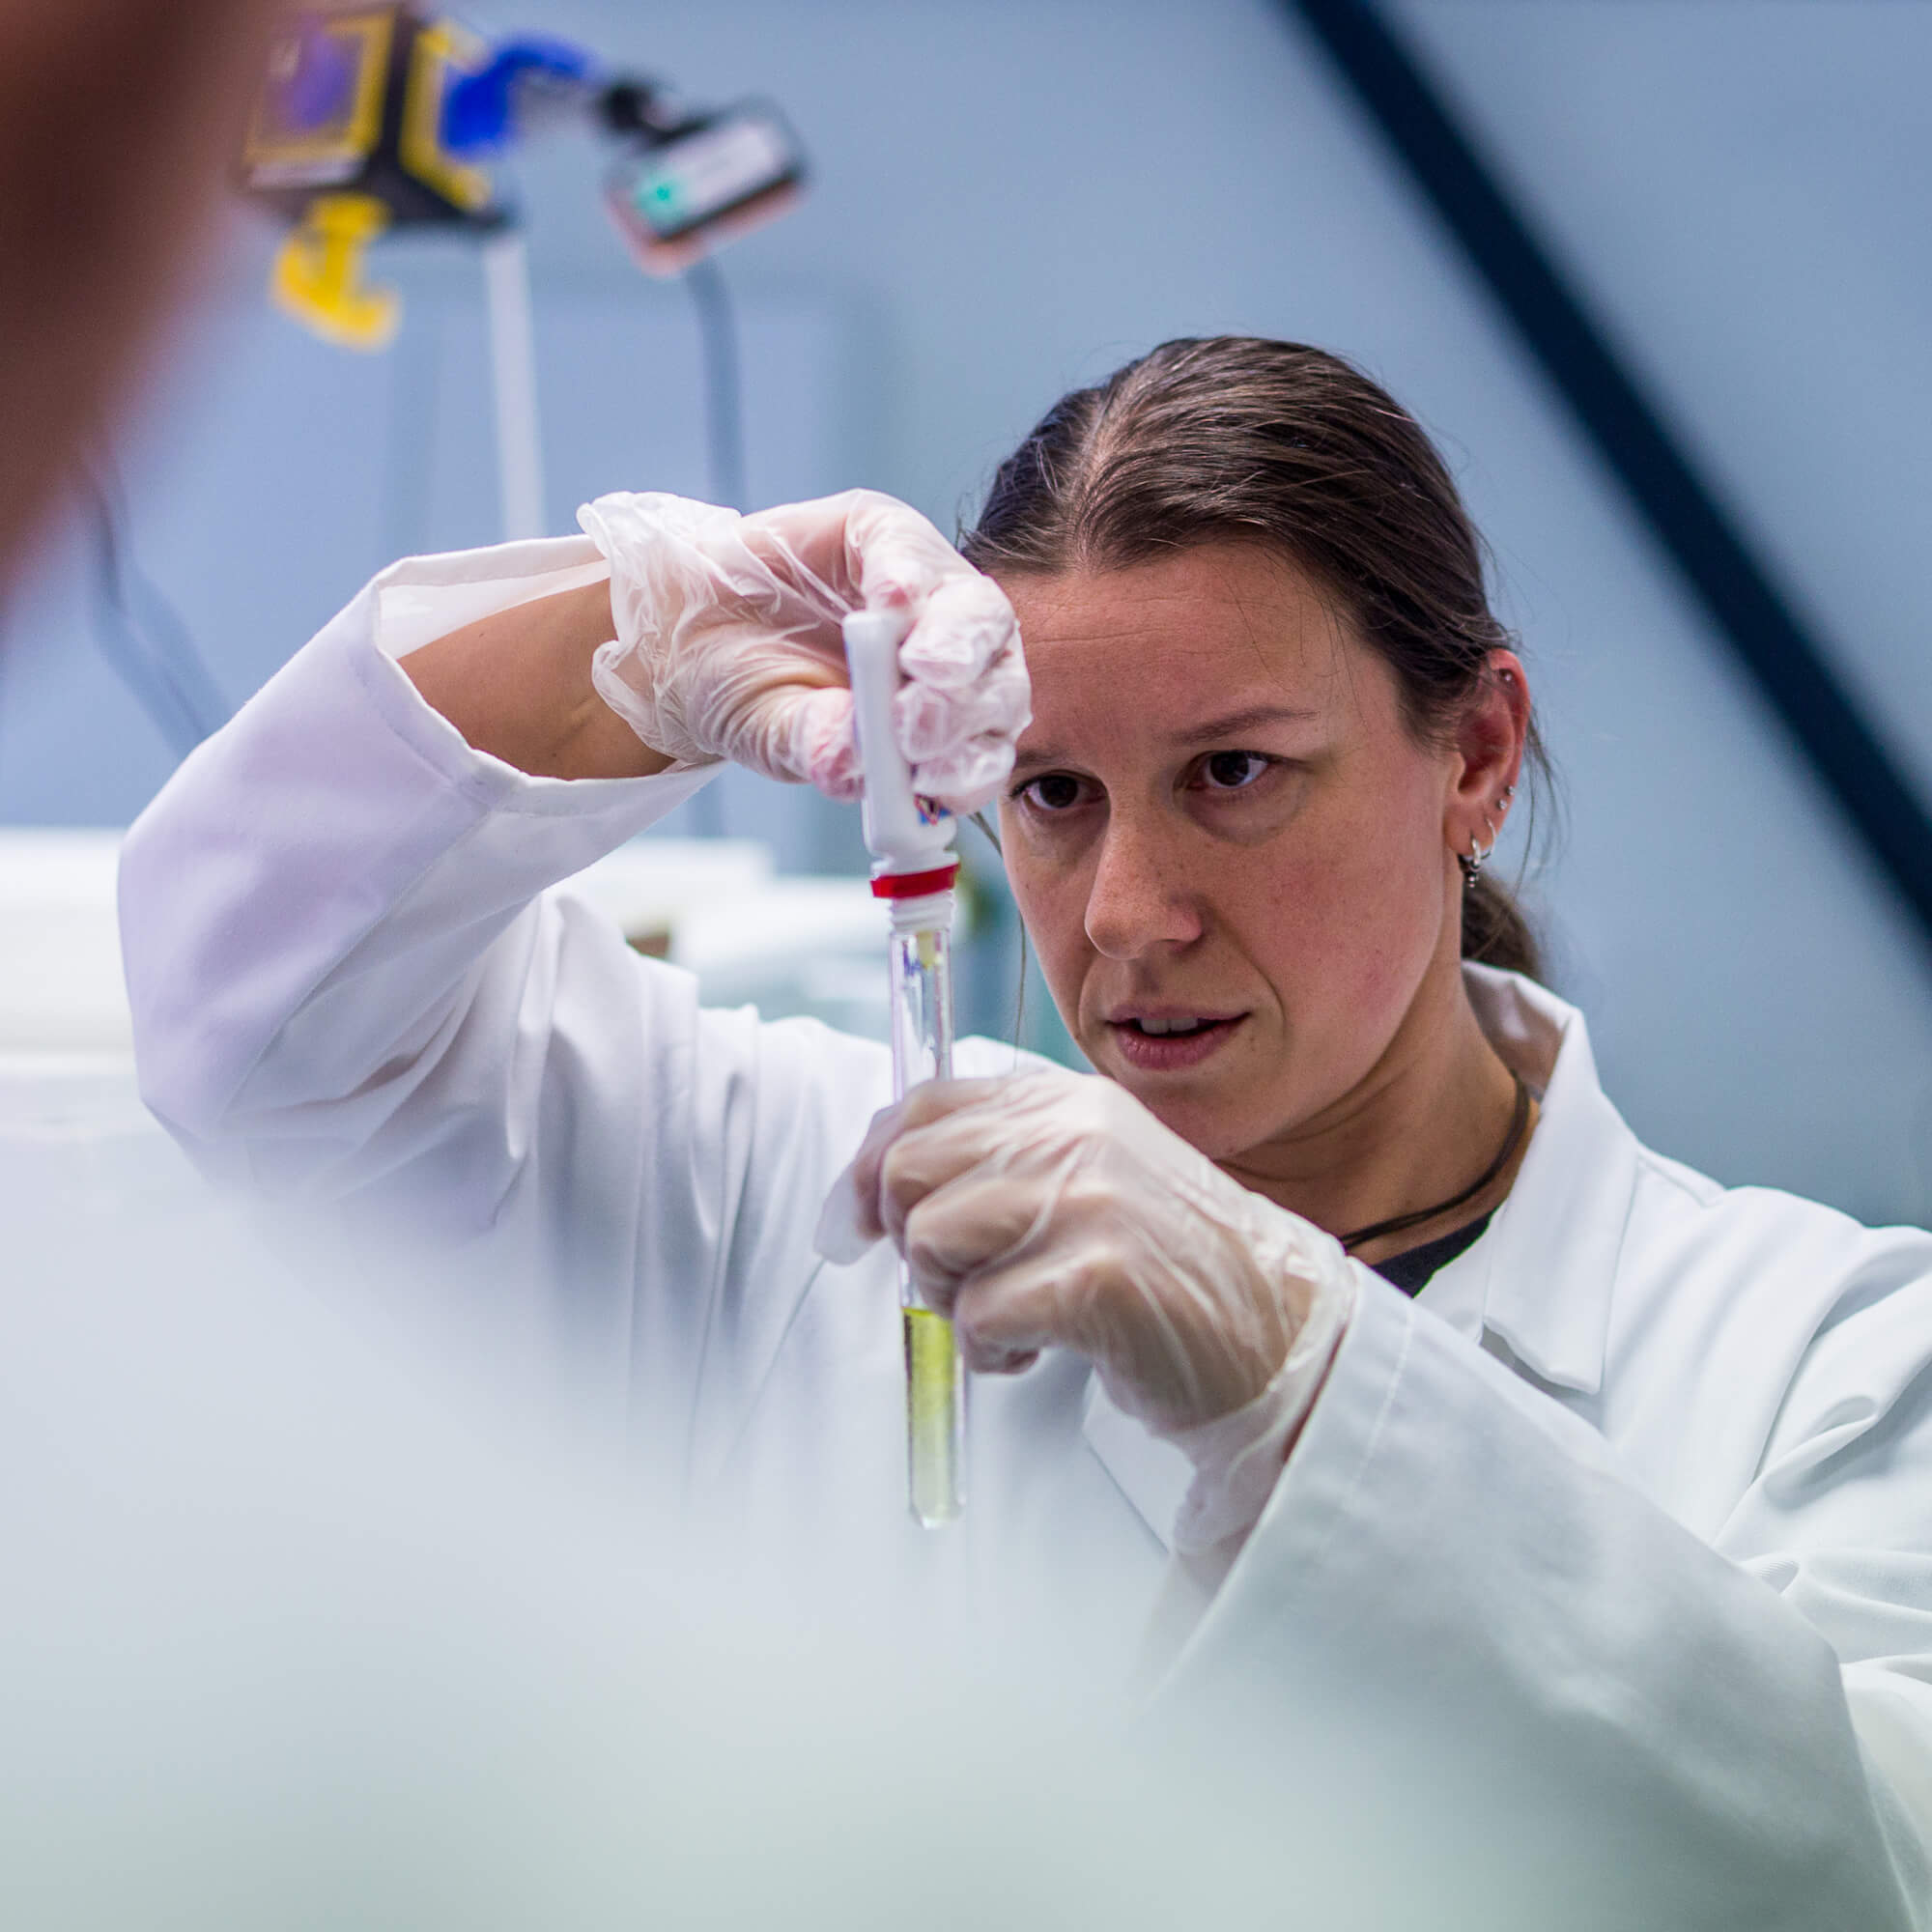 A female researcher dropping liquid into a test tube from a pipette